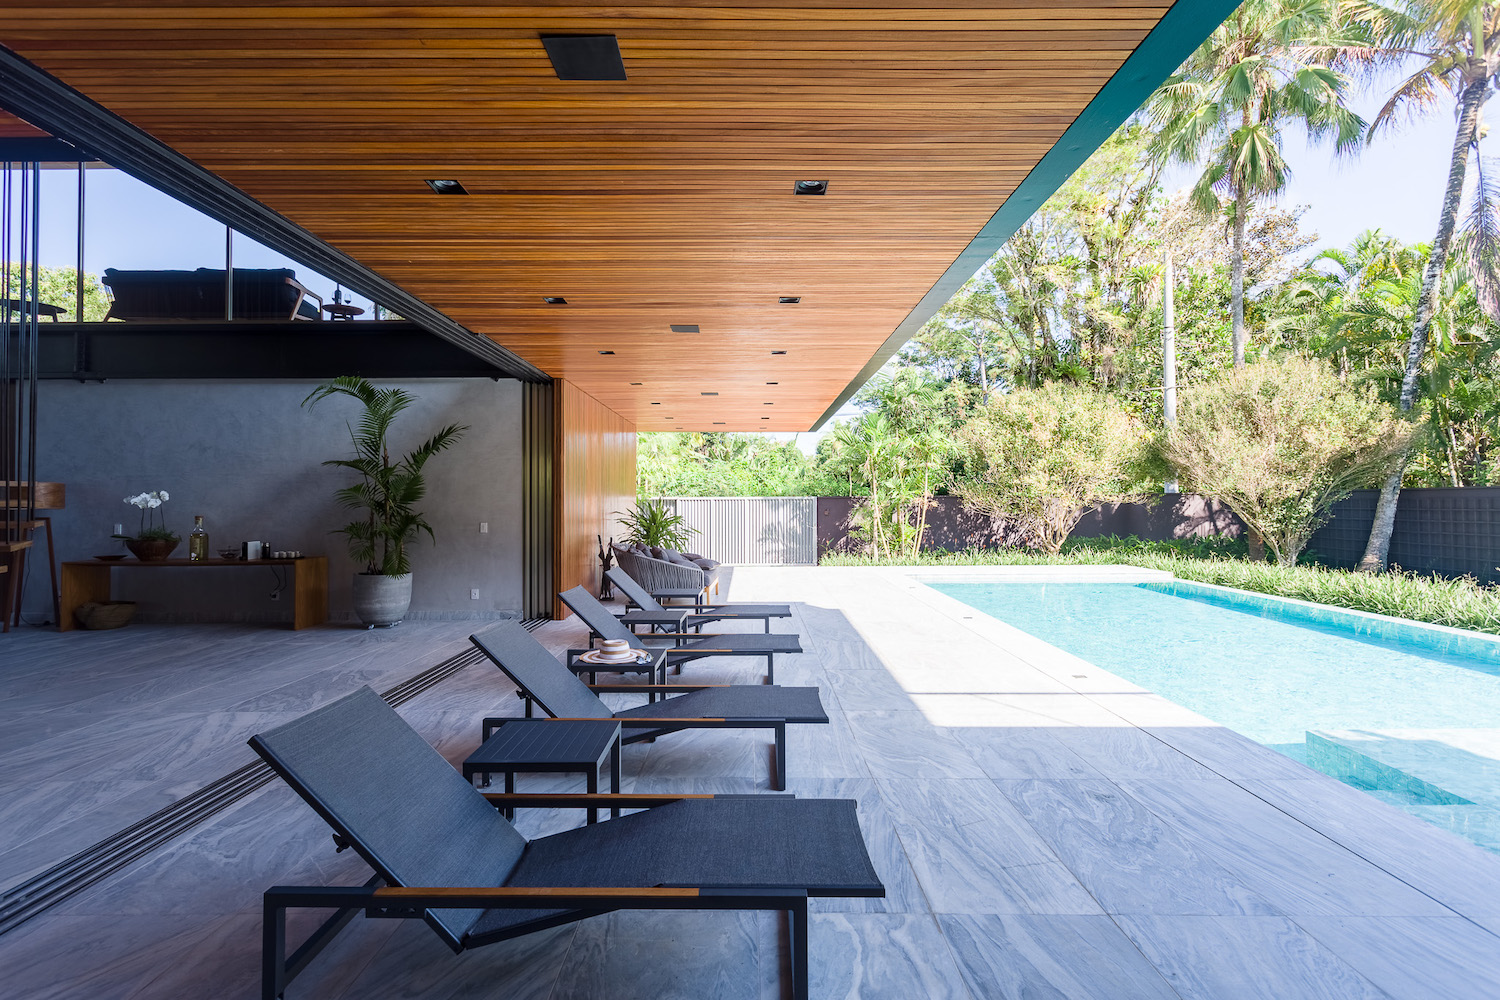 swimming pool with outdoor furniture